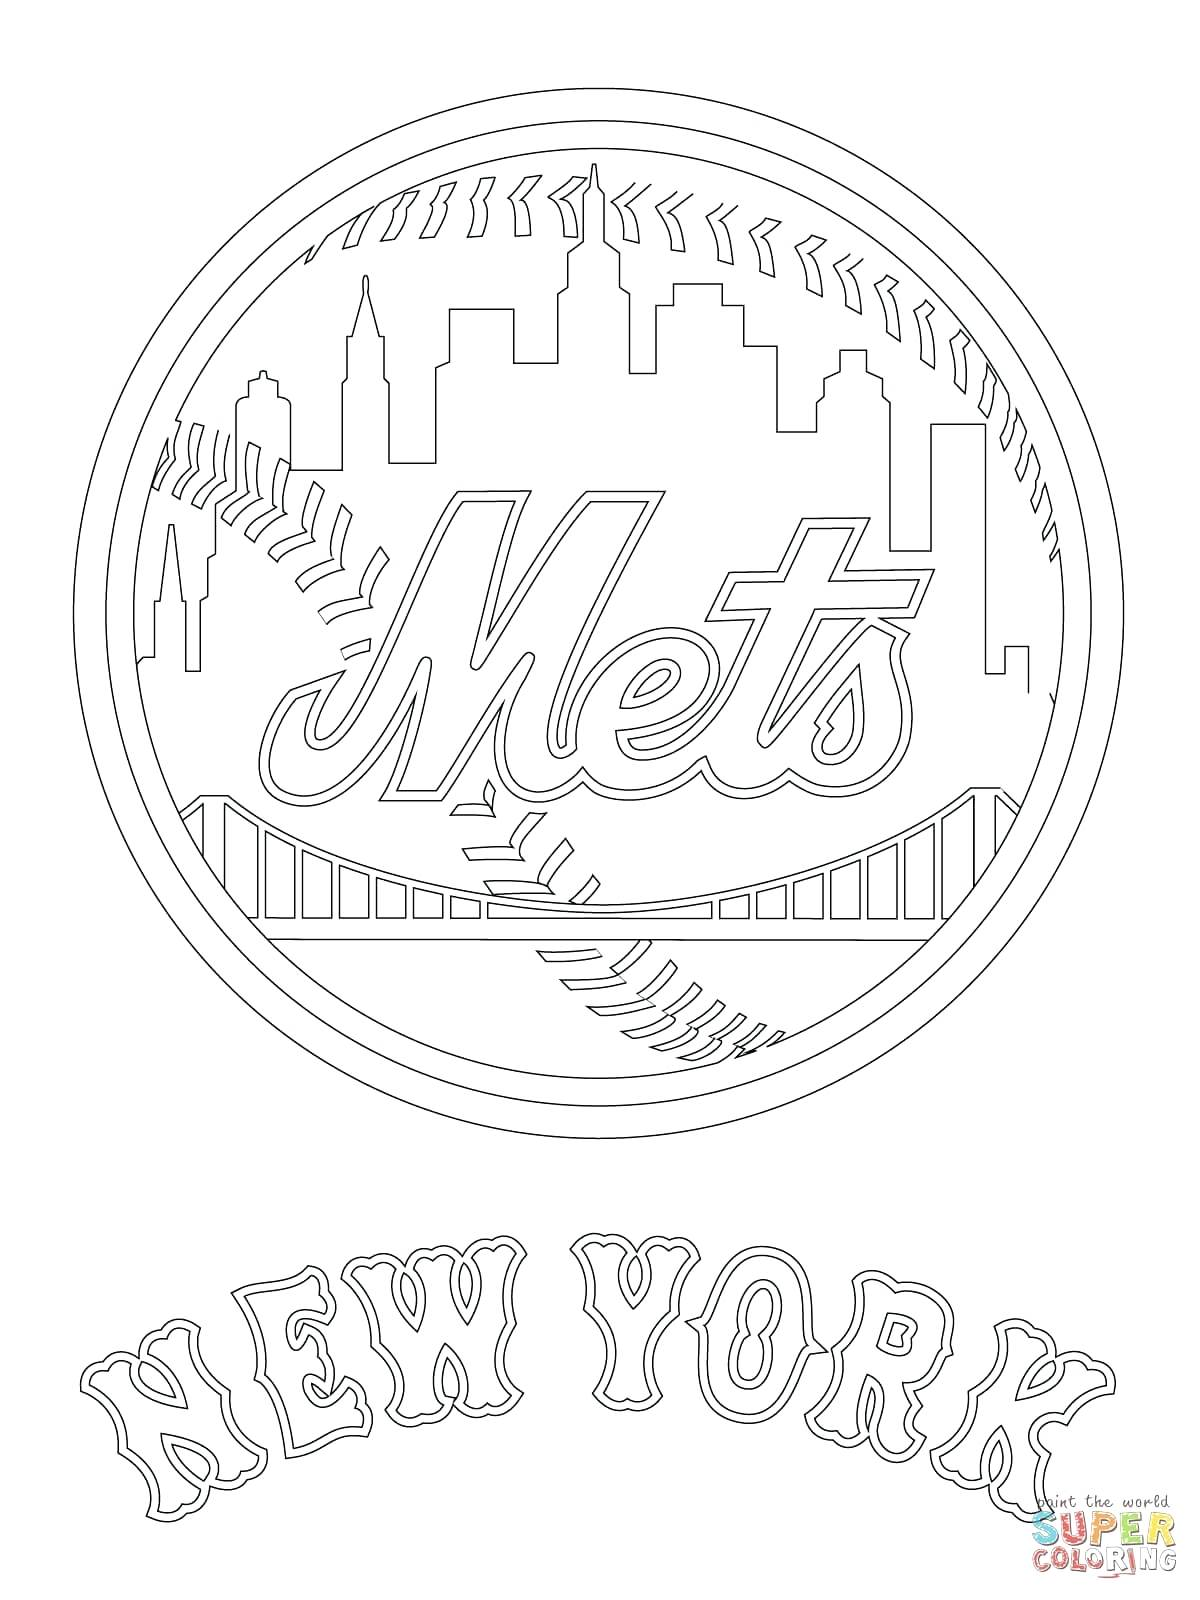 Skyline New York Drawing at GetDrawings.com | Free for personal use ...